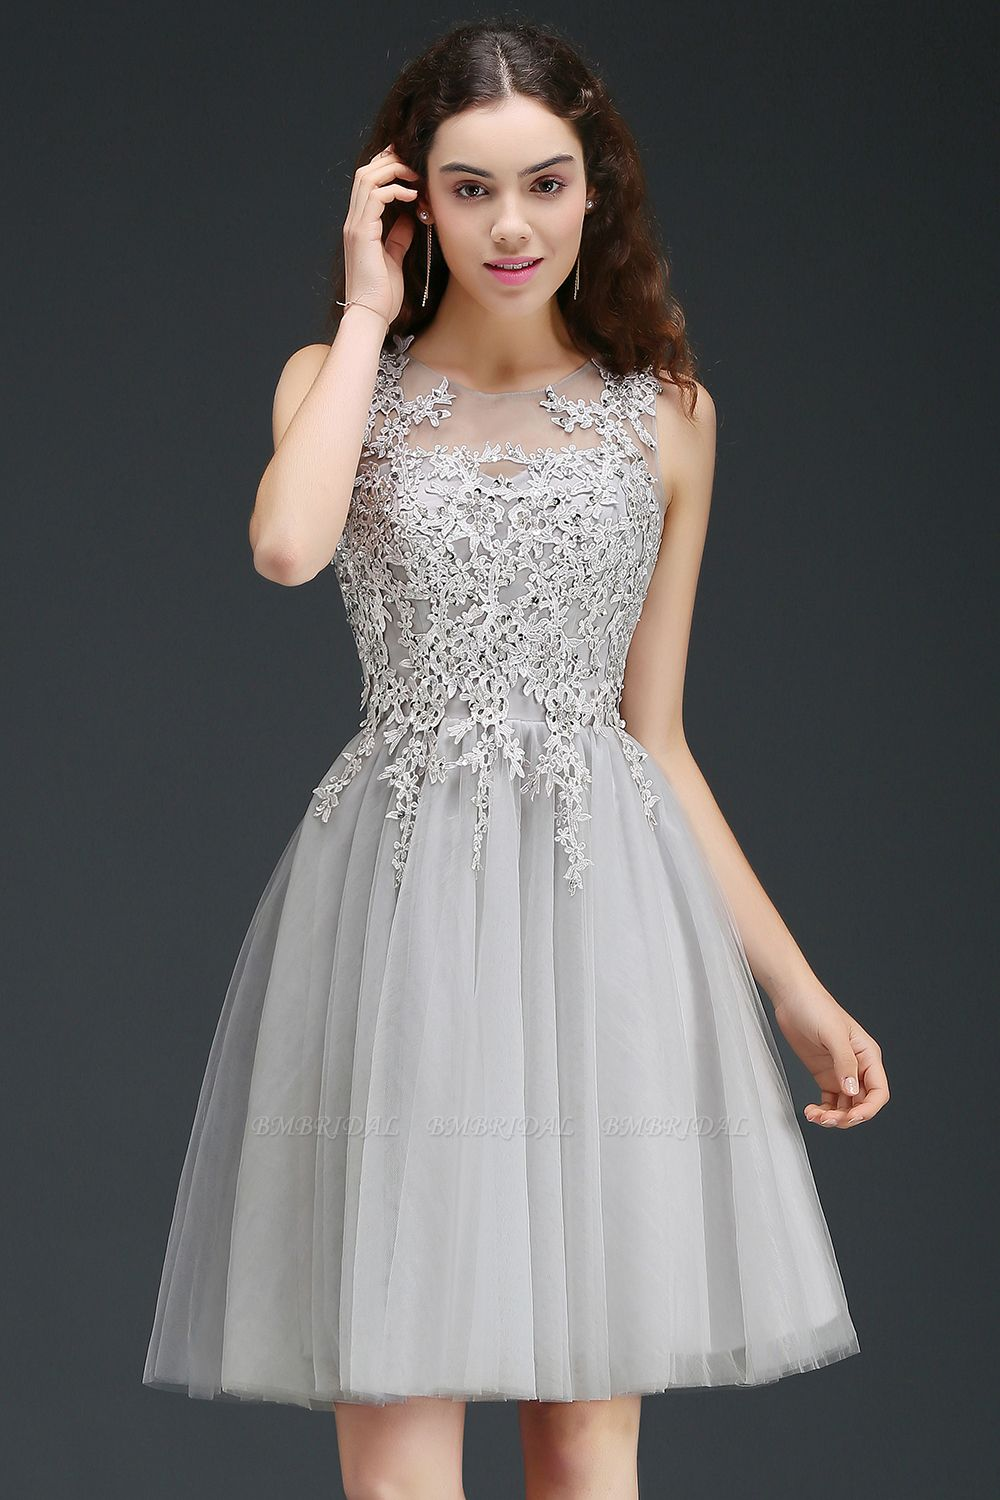 BMbridal Newest Lace Appliques Silver Jewel Sleeveless Short Homecoming Dress